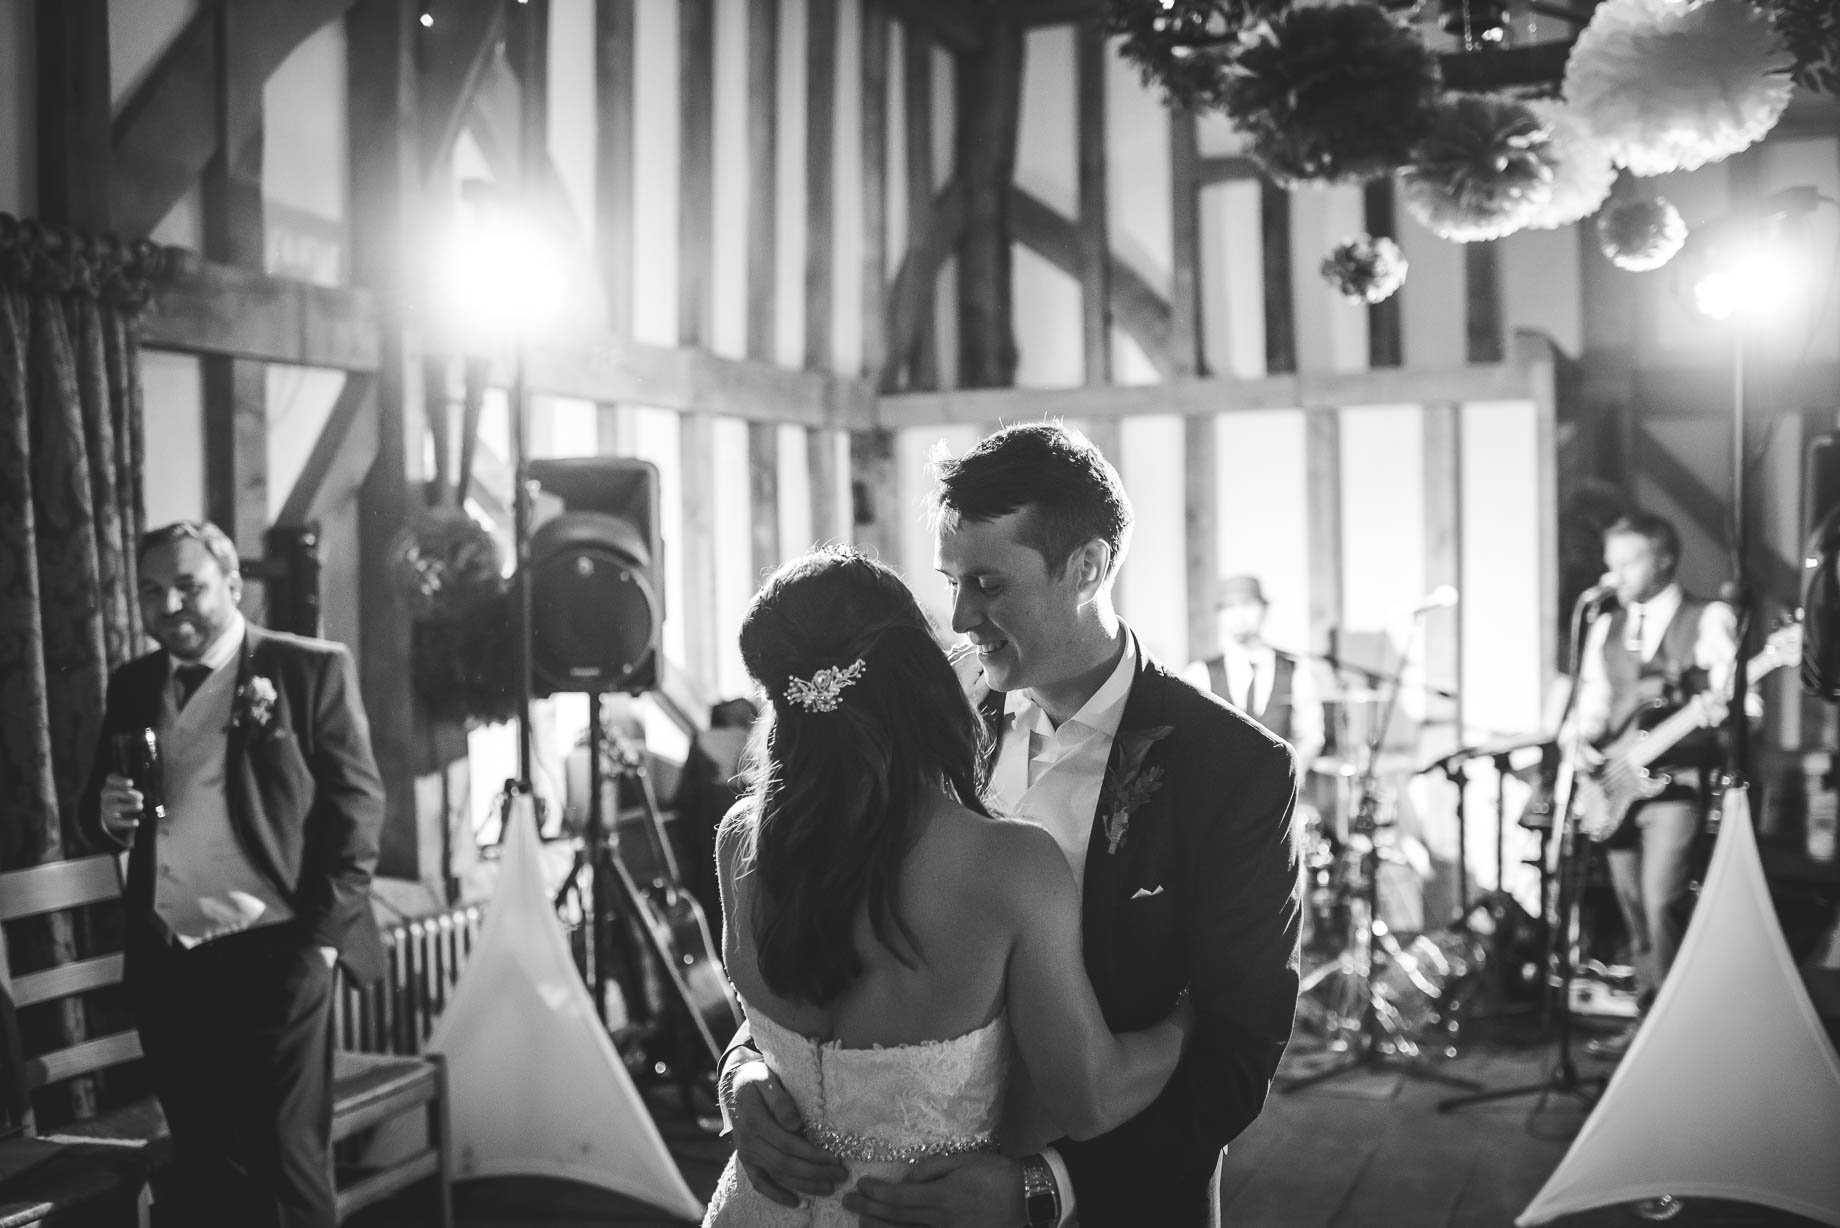 Gate Street Barn wedding photography - Guy Collier - Claire and Andy (183 of 192)